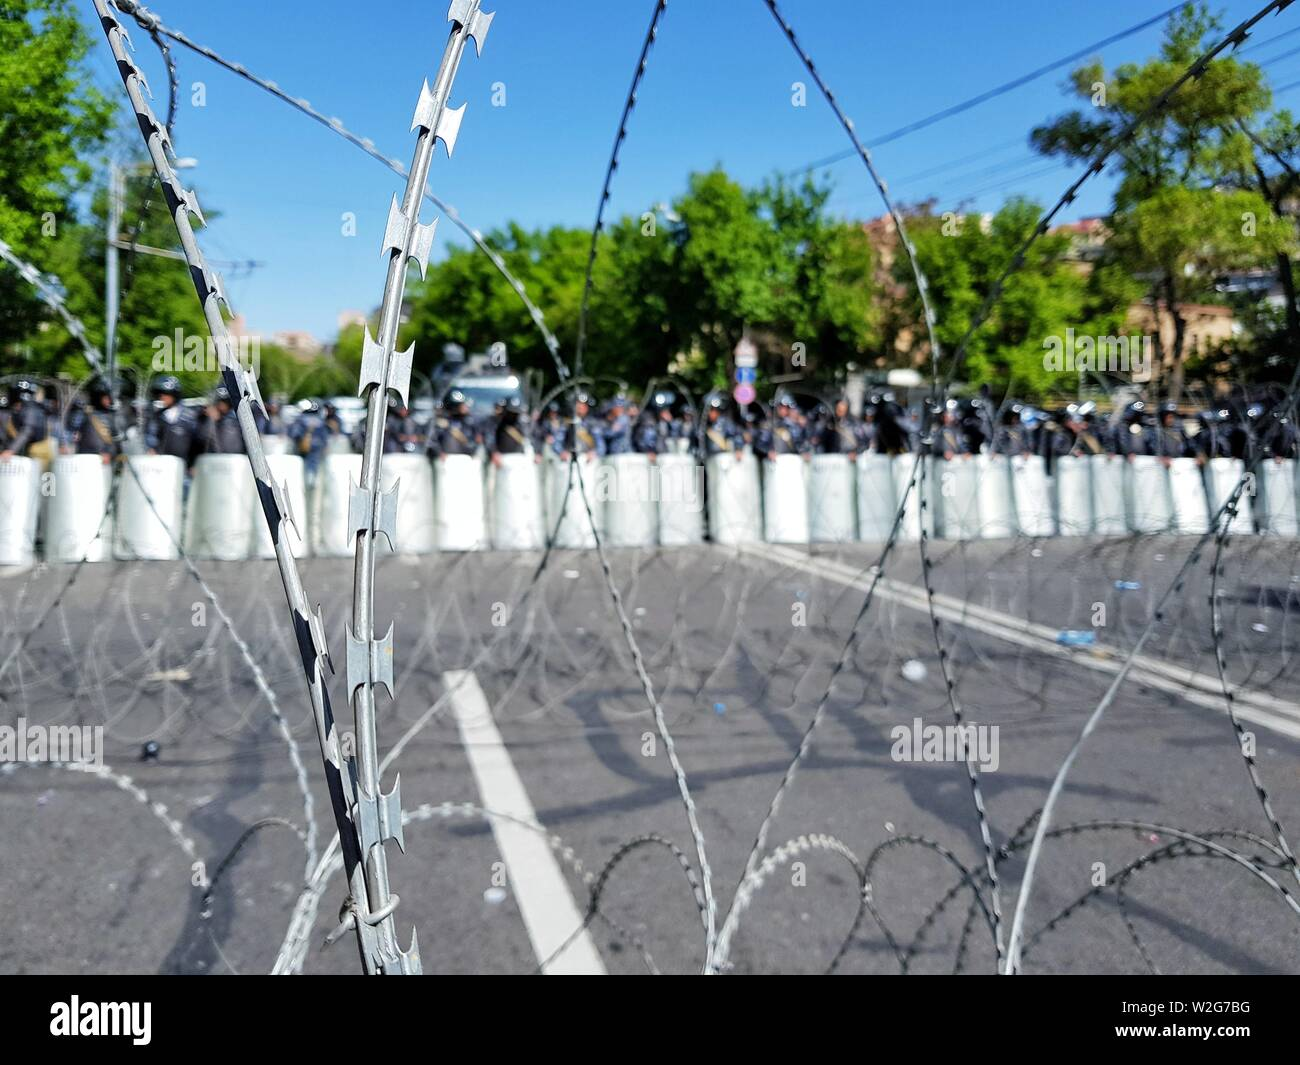 A barbed wire fence set up by police during a riot - Stock Image